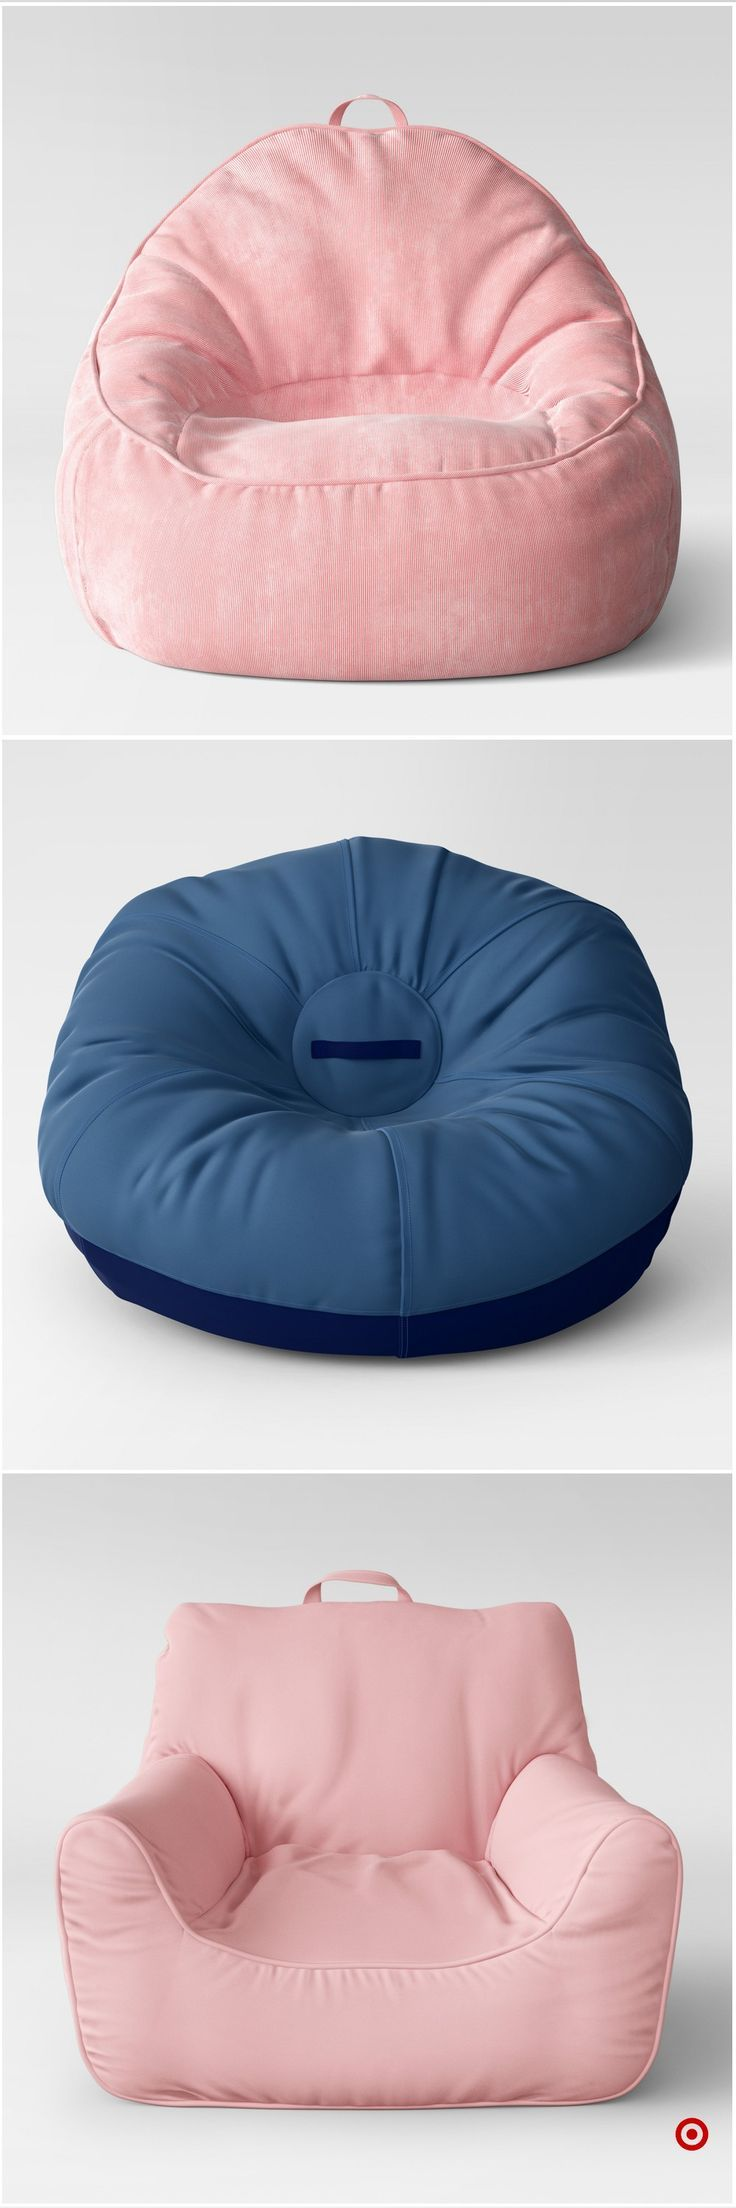 shop target for bean bag chair you will love at great low prices free shipping on orders of 35. Black Bedroom Furniture Sets. Home Design Ideas